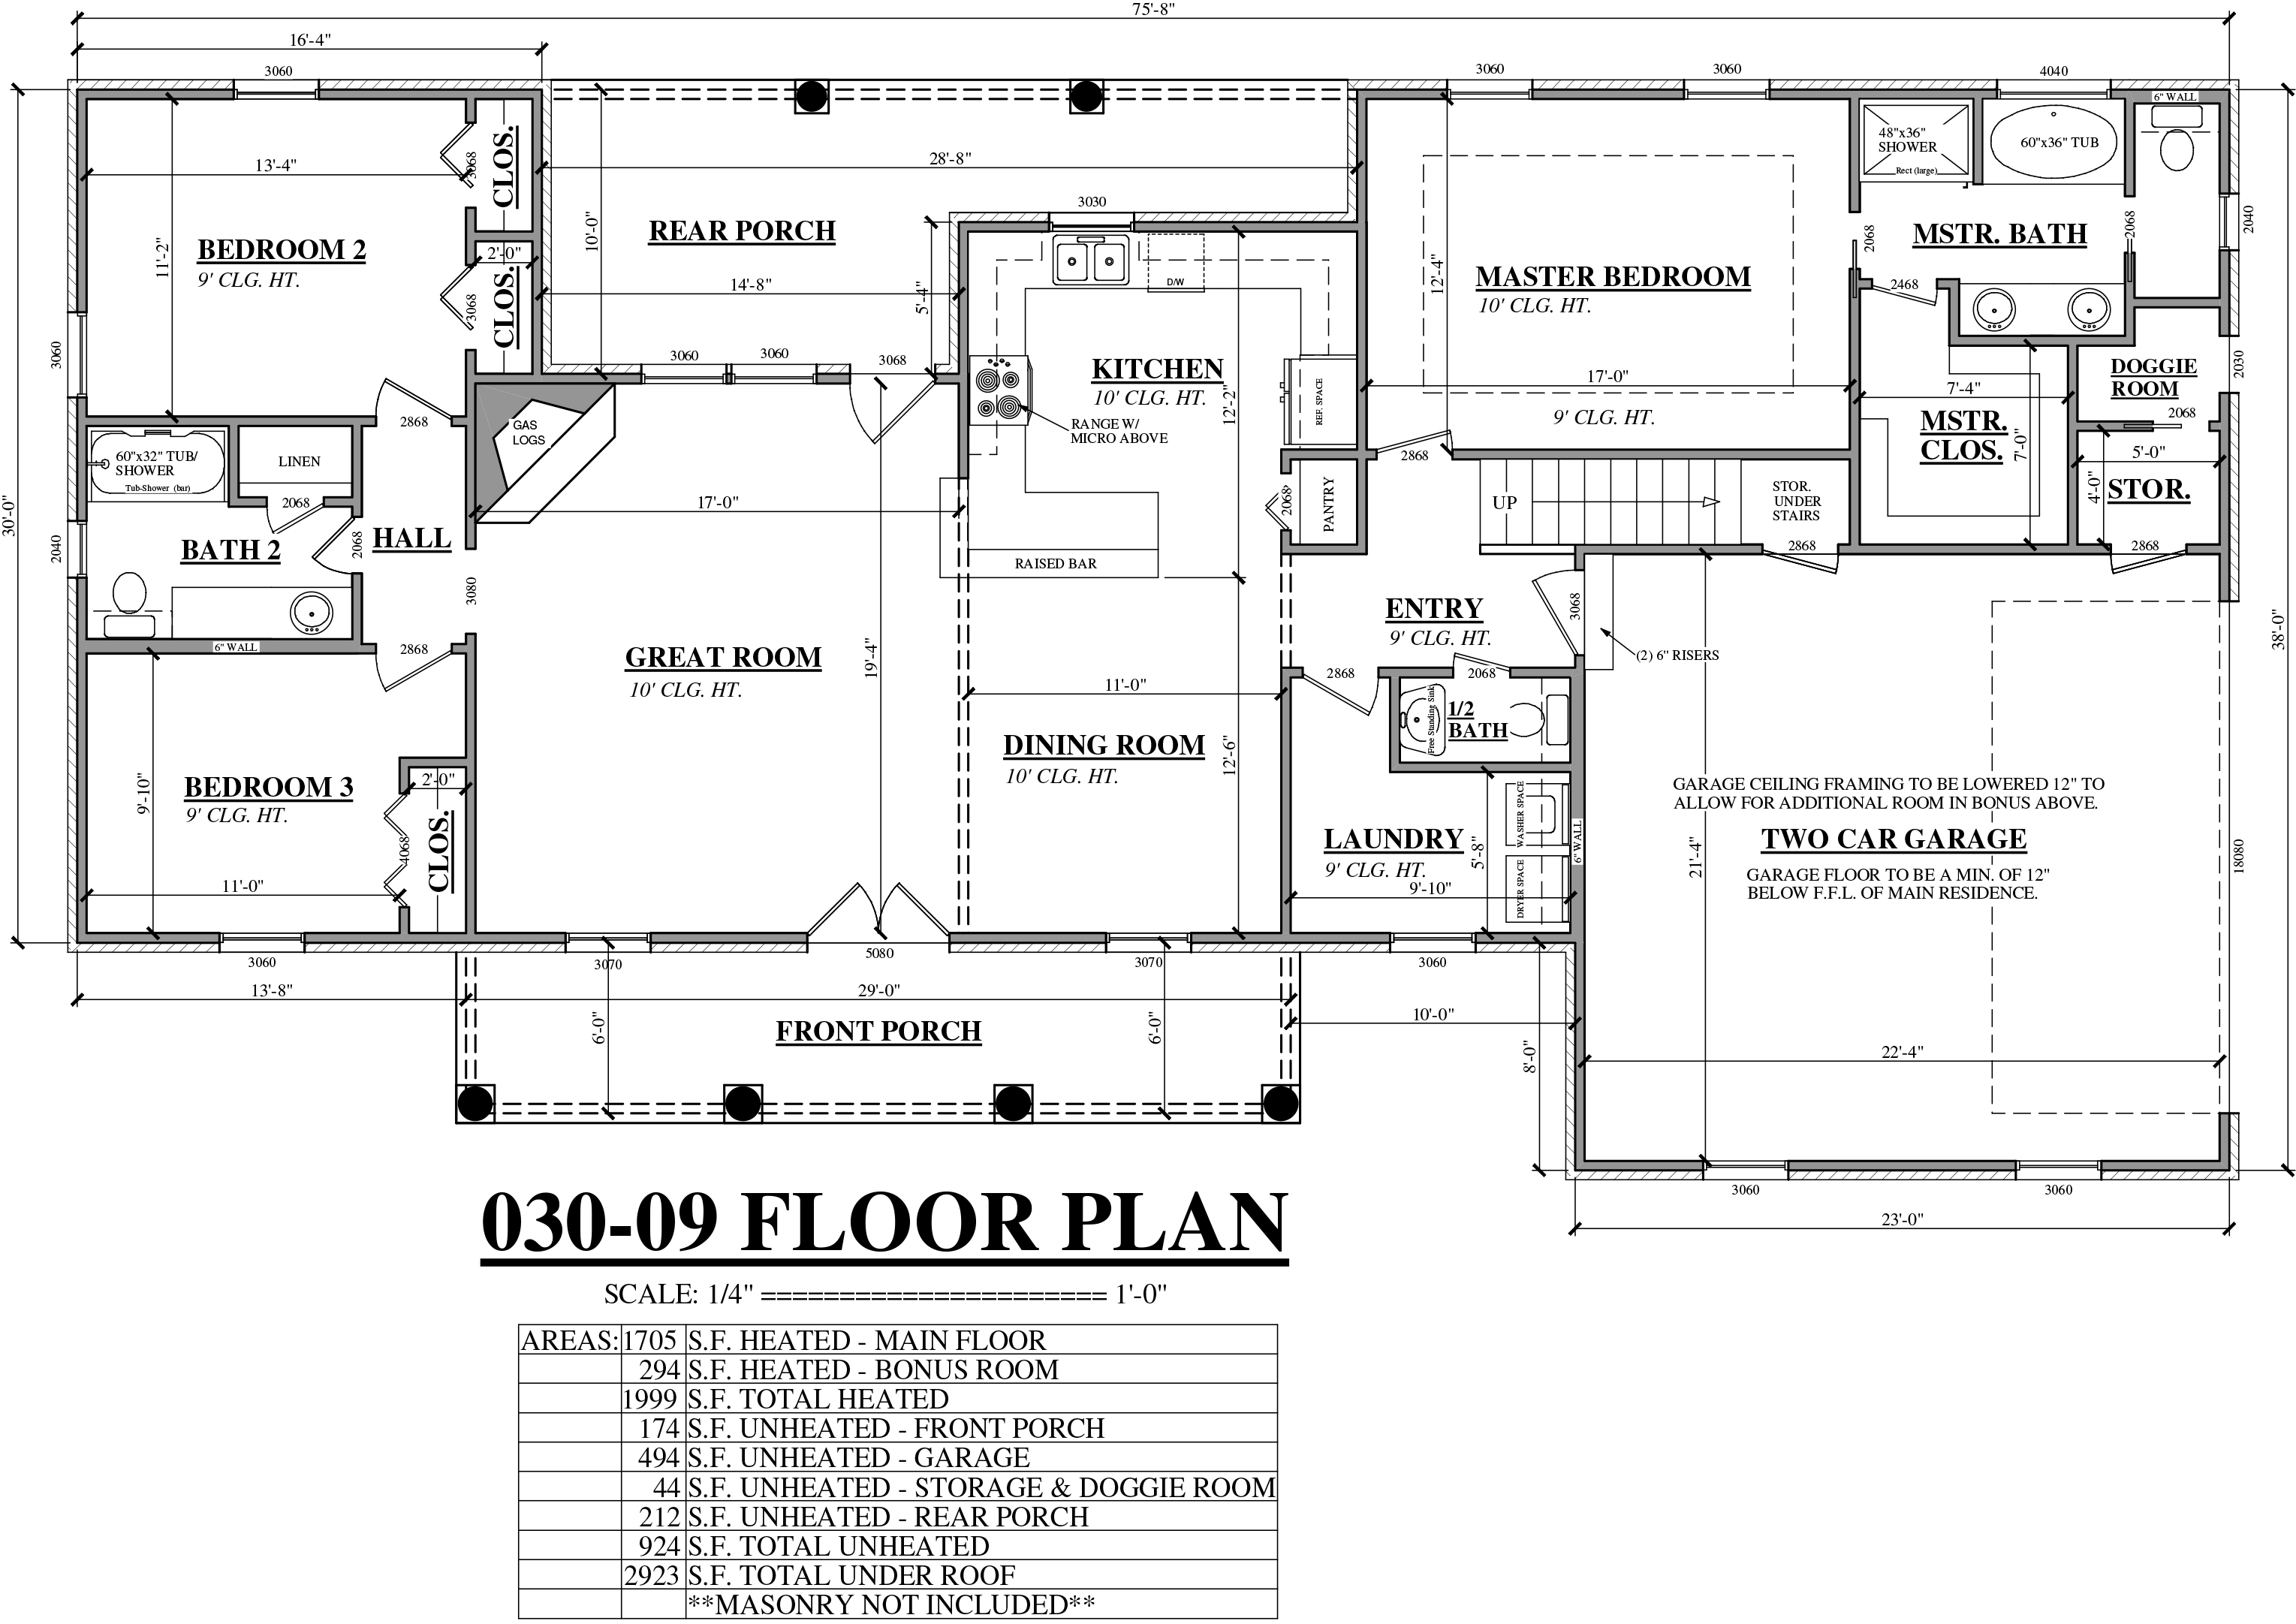 Bellepointe House Plans Flanagan onstruction - ^